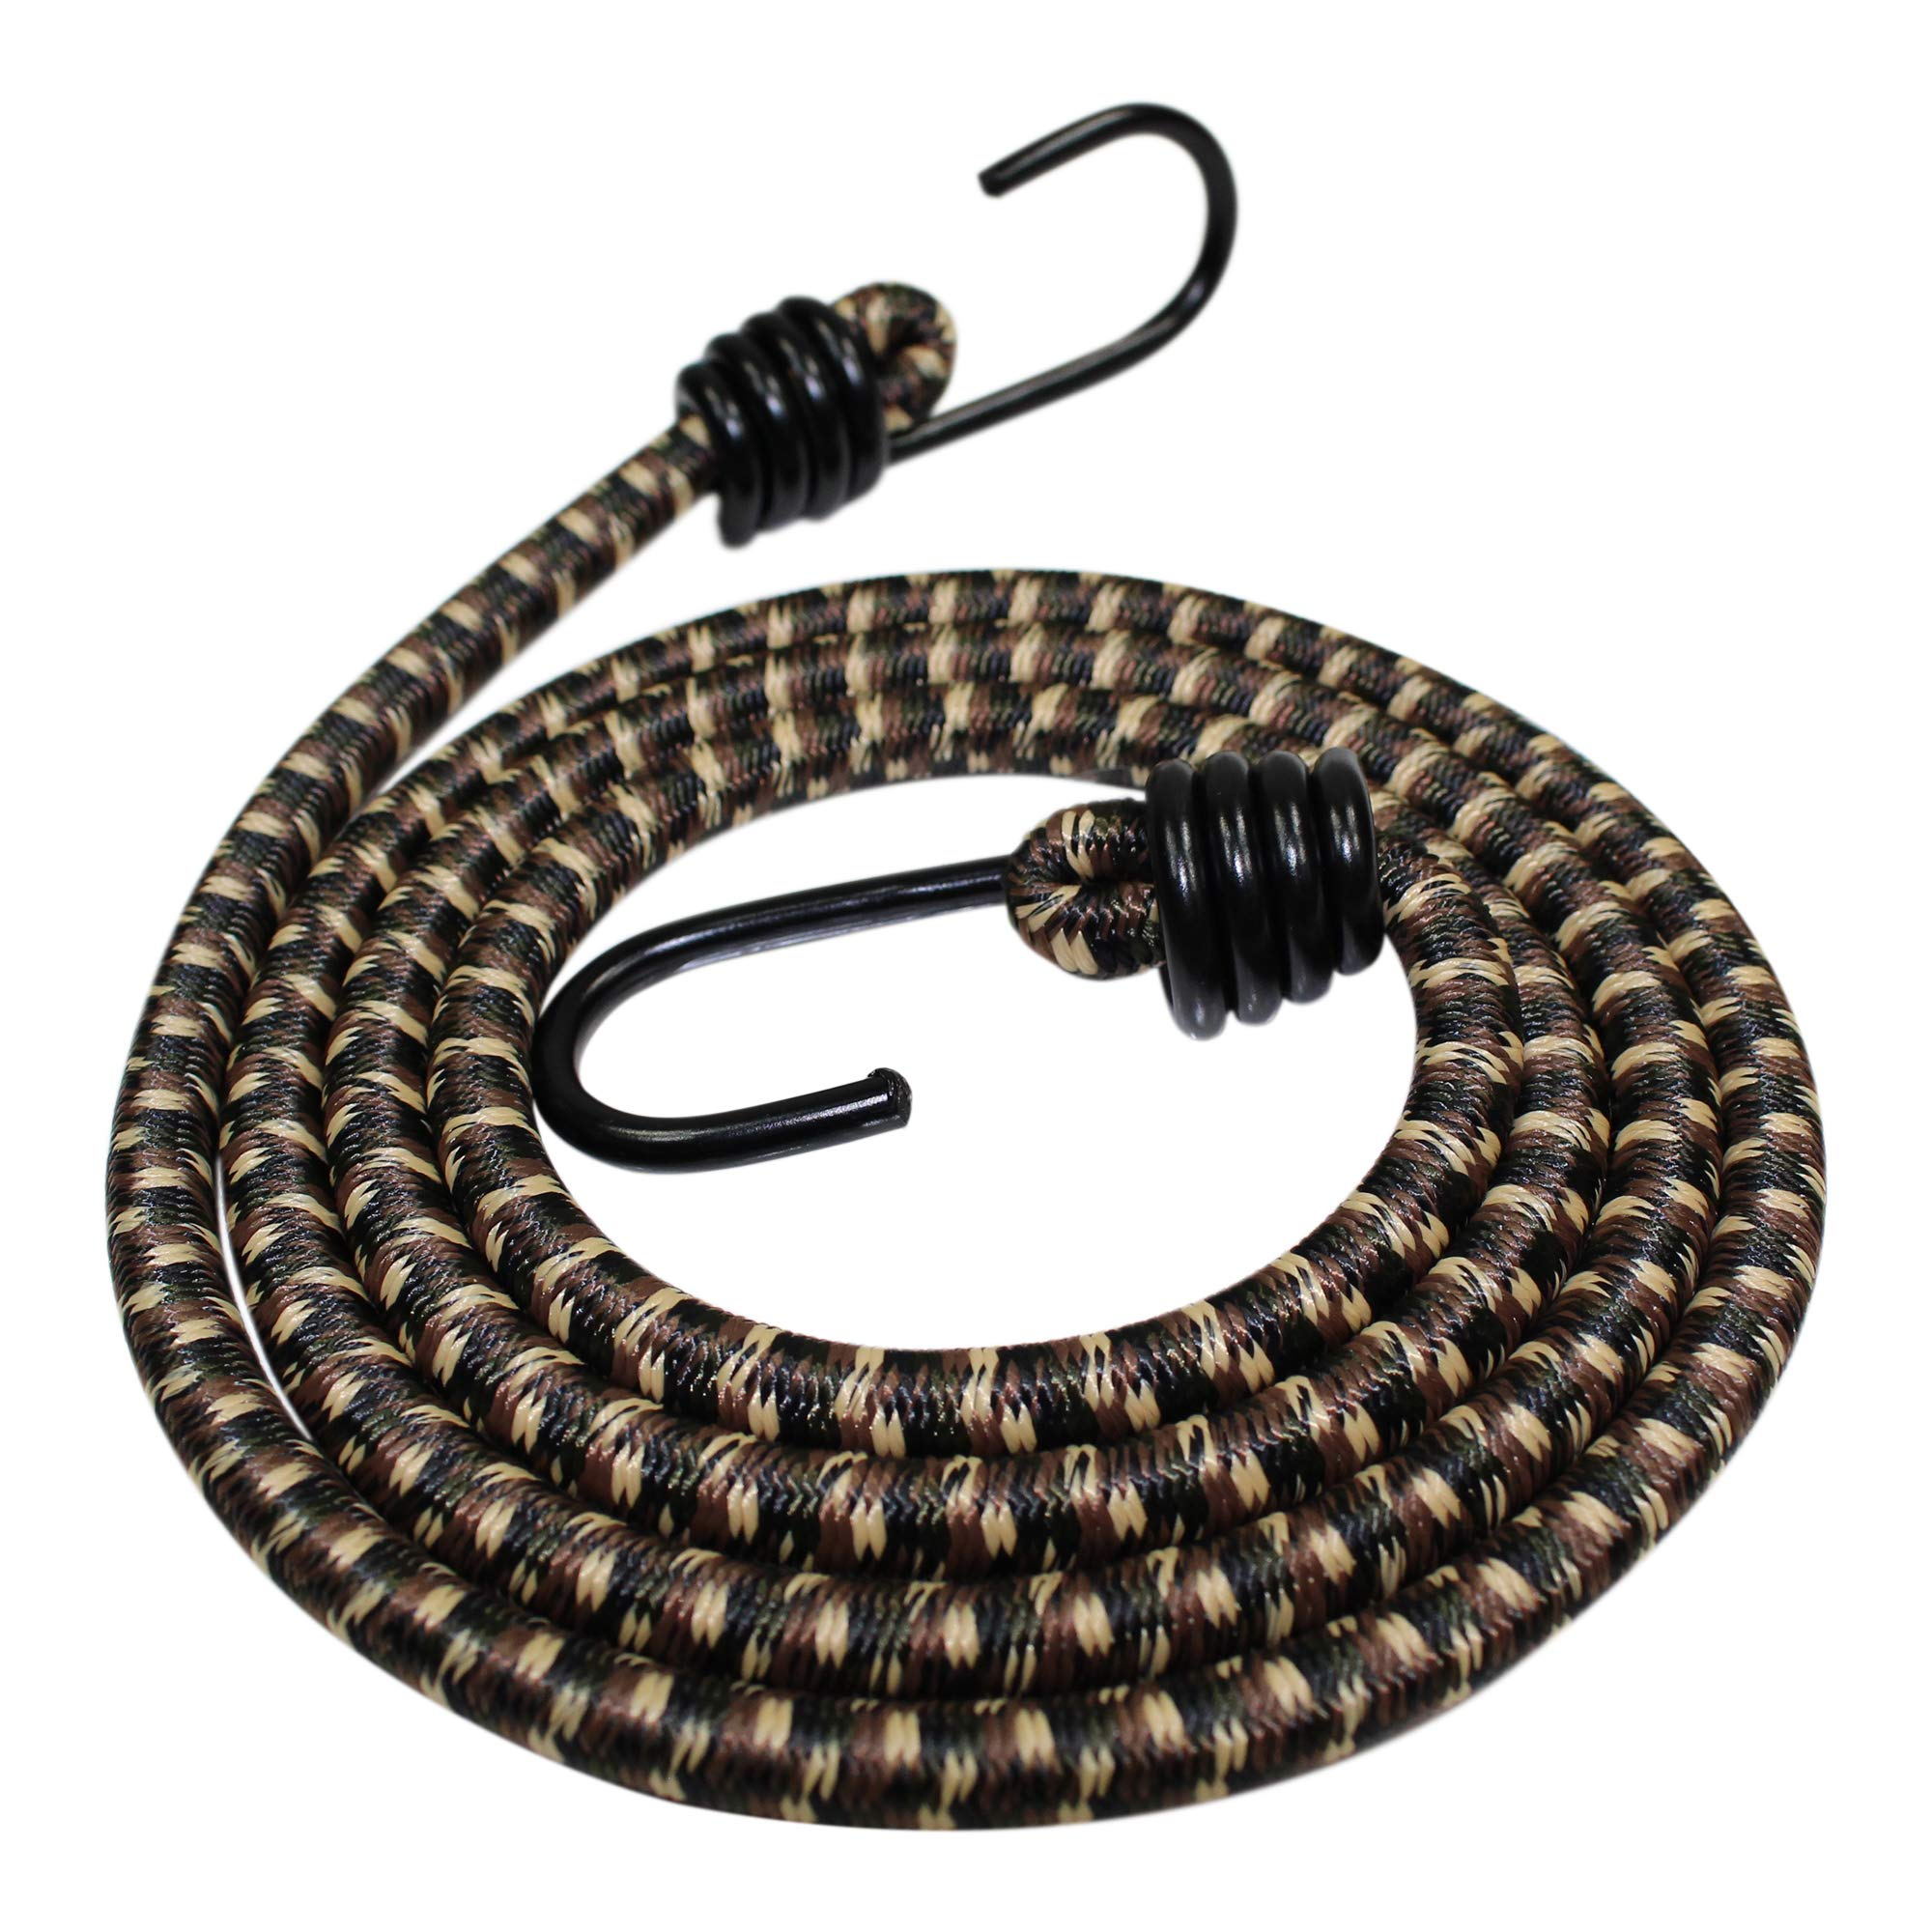 Bungee Cord with Hooks (3/8 in 4-Pack) - SGT KNOTS - Marine Grade Bungee Cords with 2 Hooks - Heavy Duty Bungee Cord Straps - Bungees for Bikes, Tie Downs, Camping, Cars (56 in - Woodland Camo) by SGT KNOTS